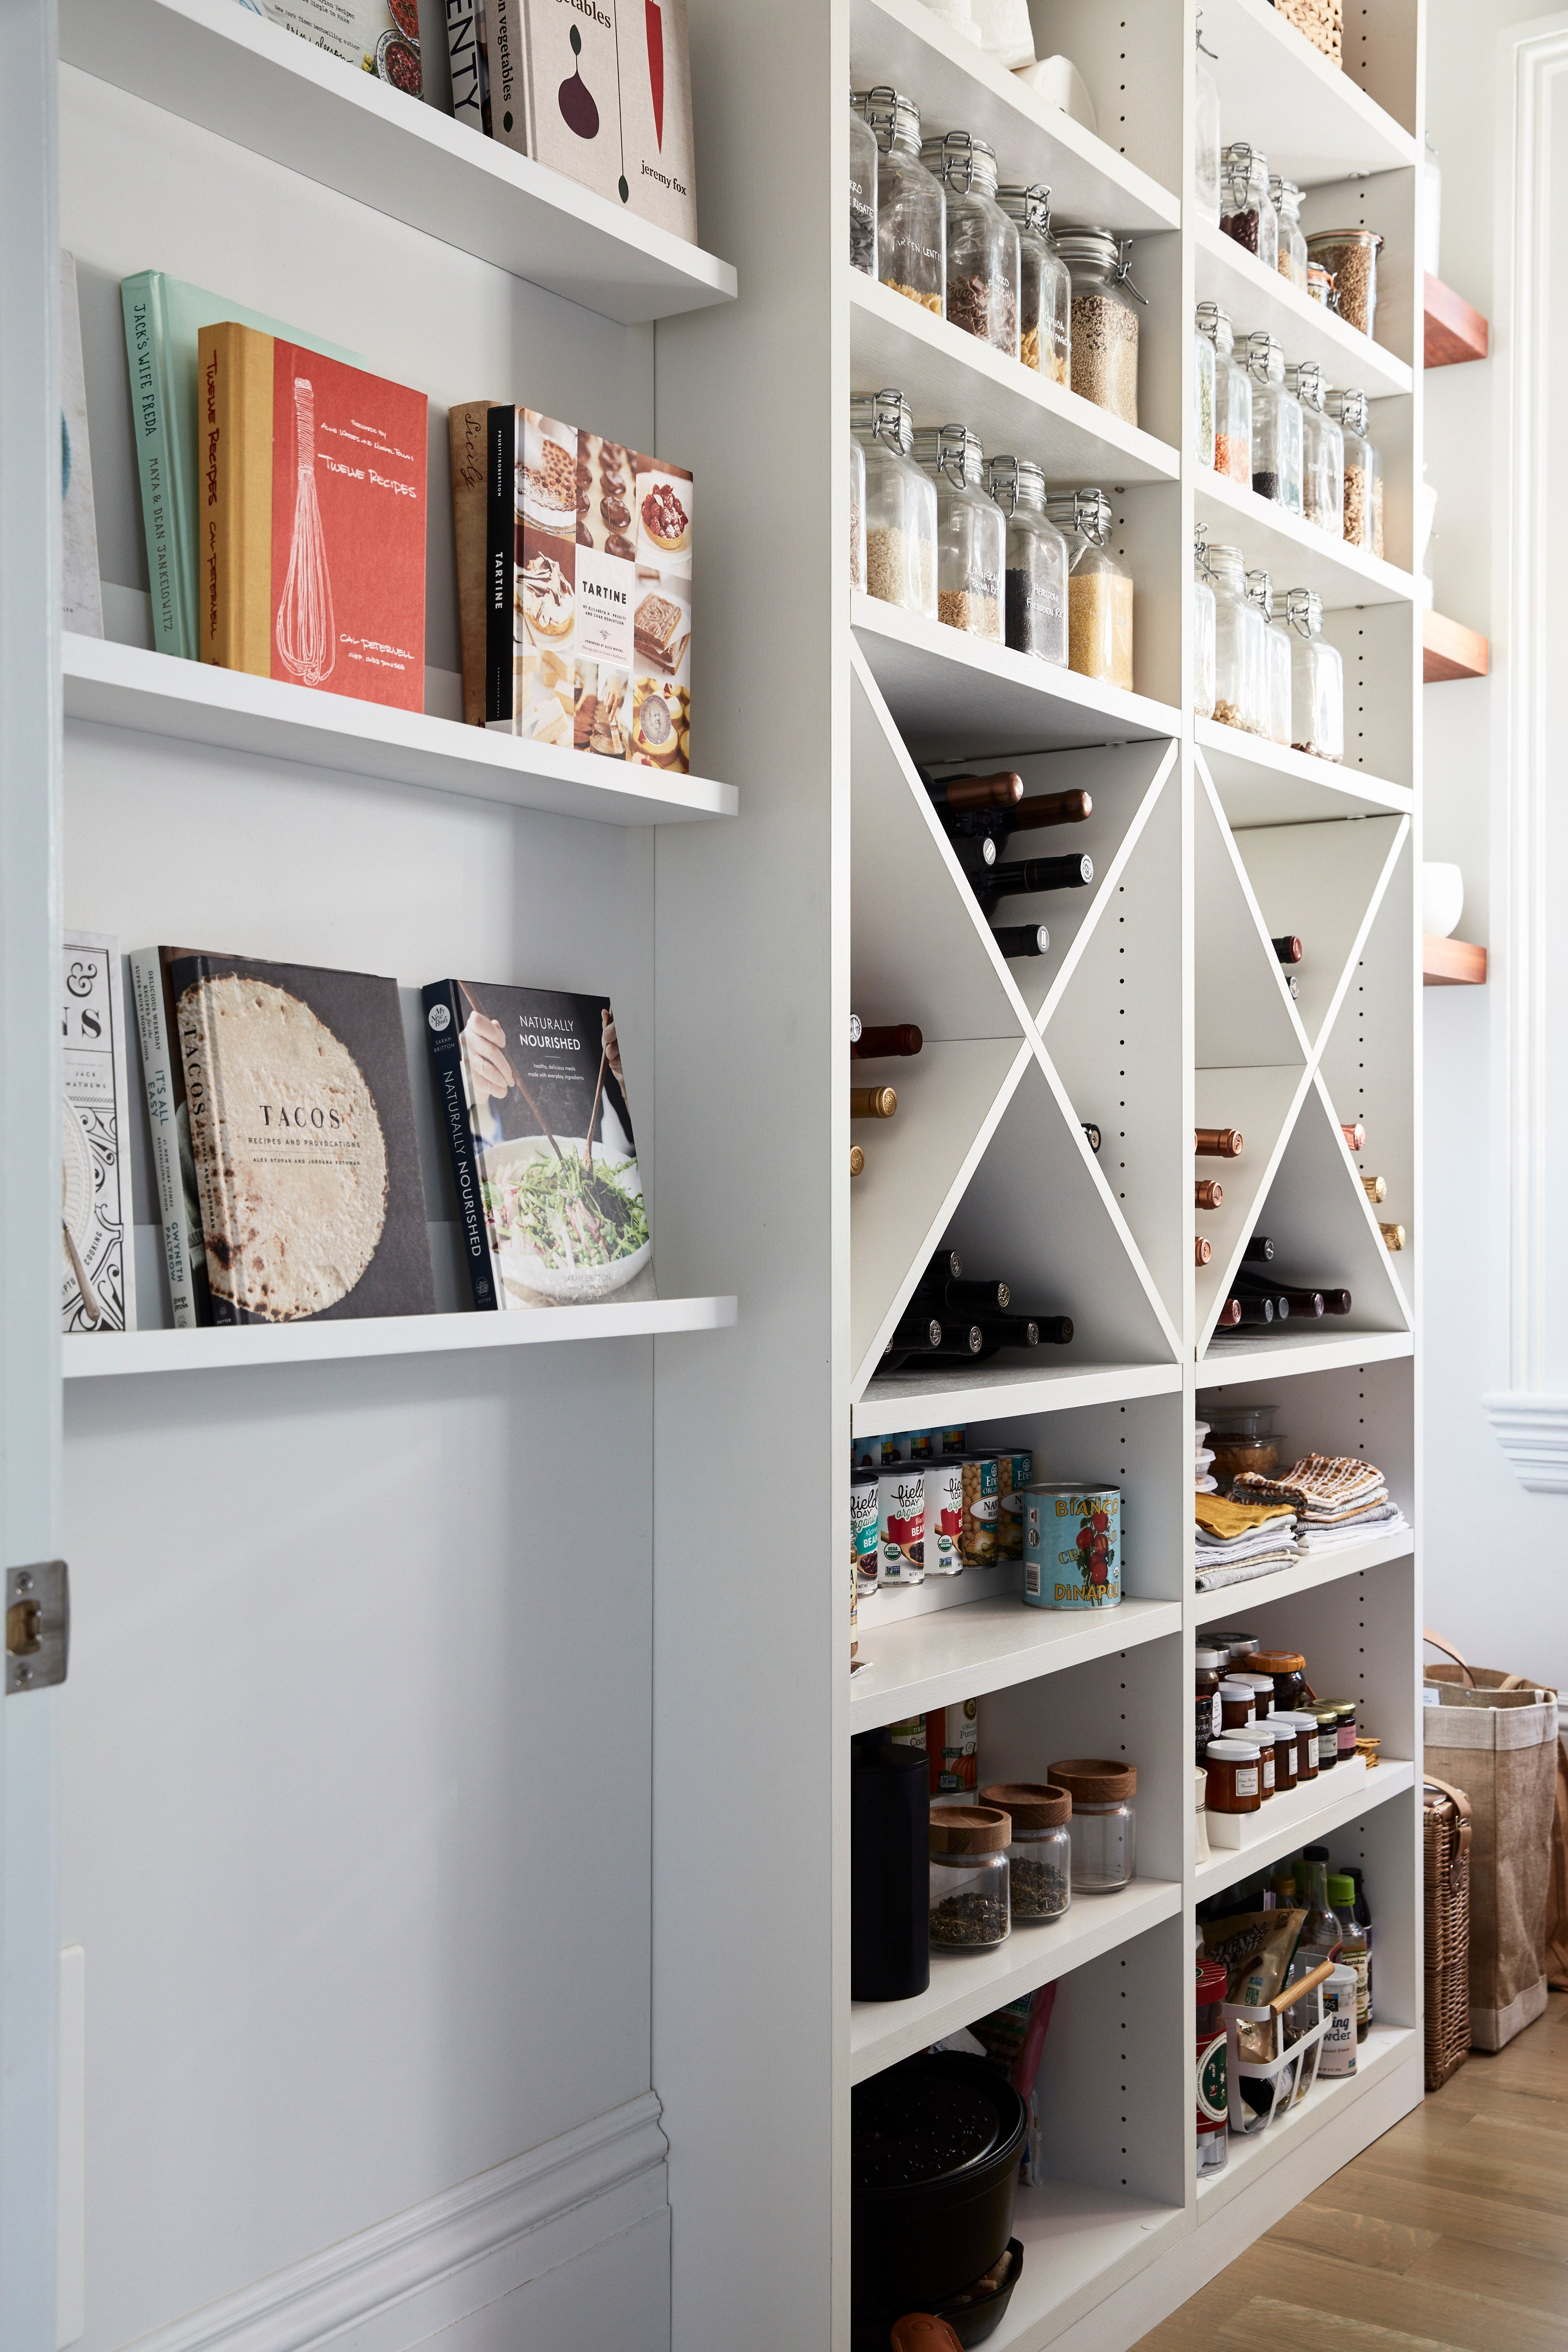 00feature_ErinHiemstra_PANTRY